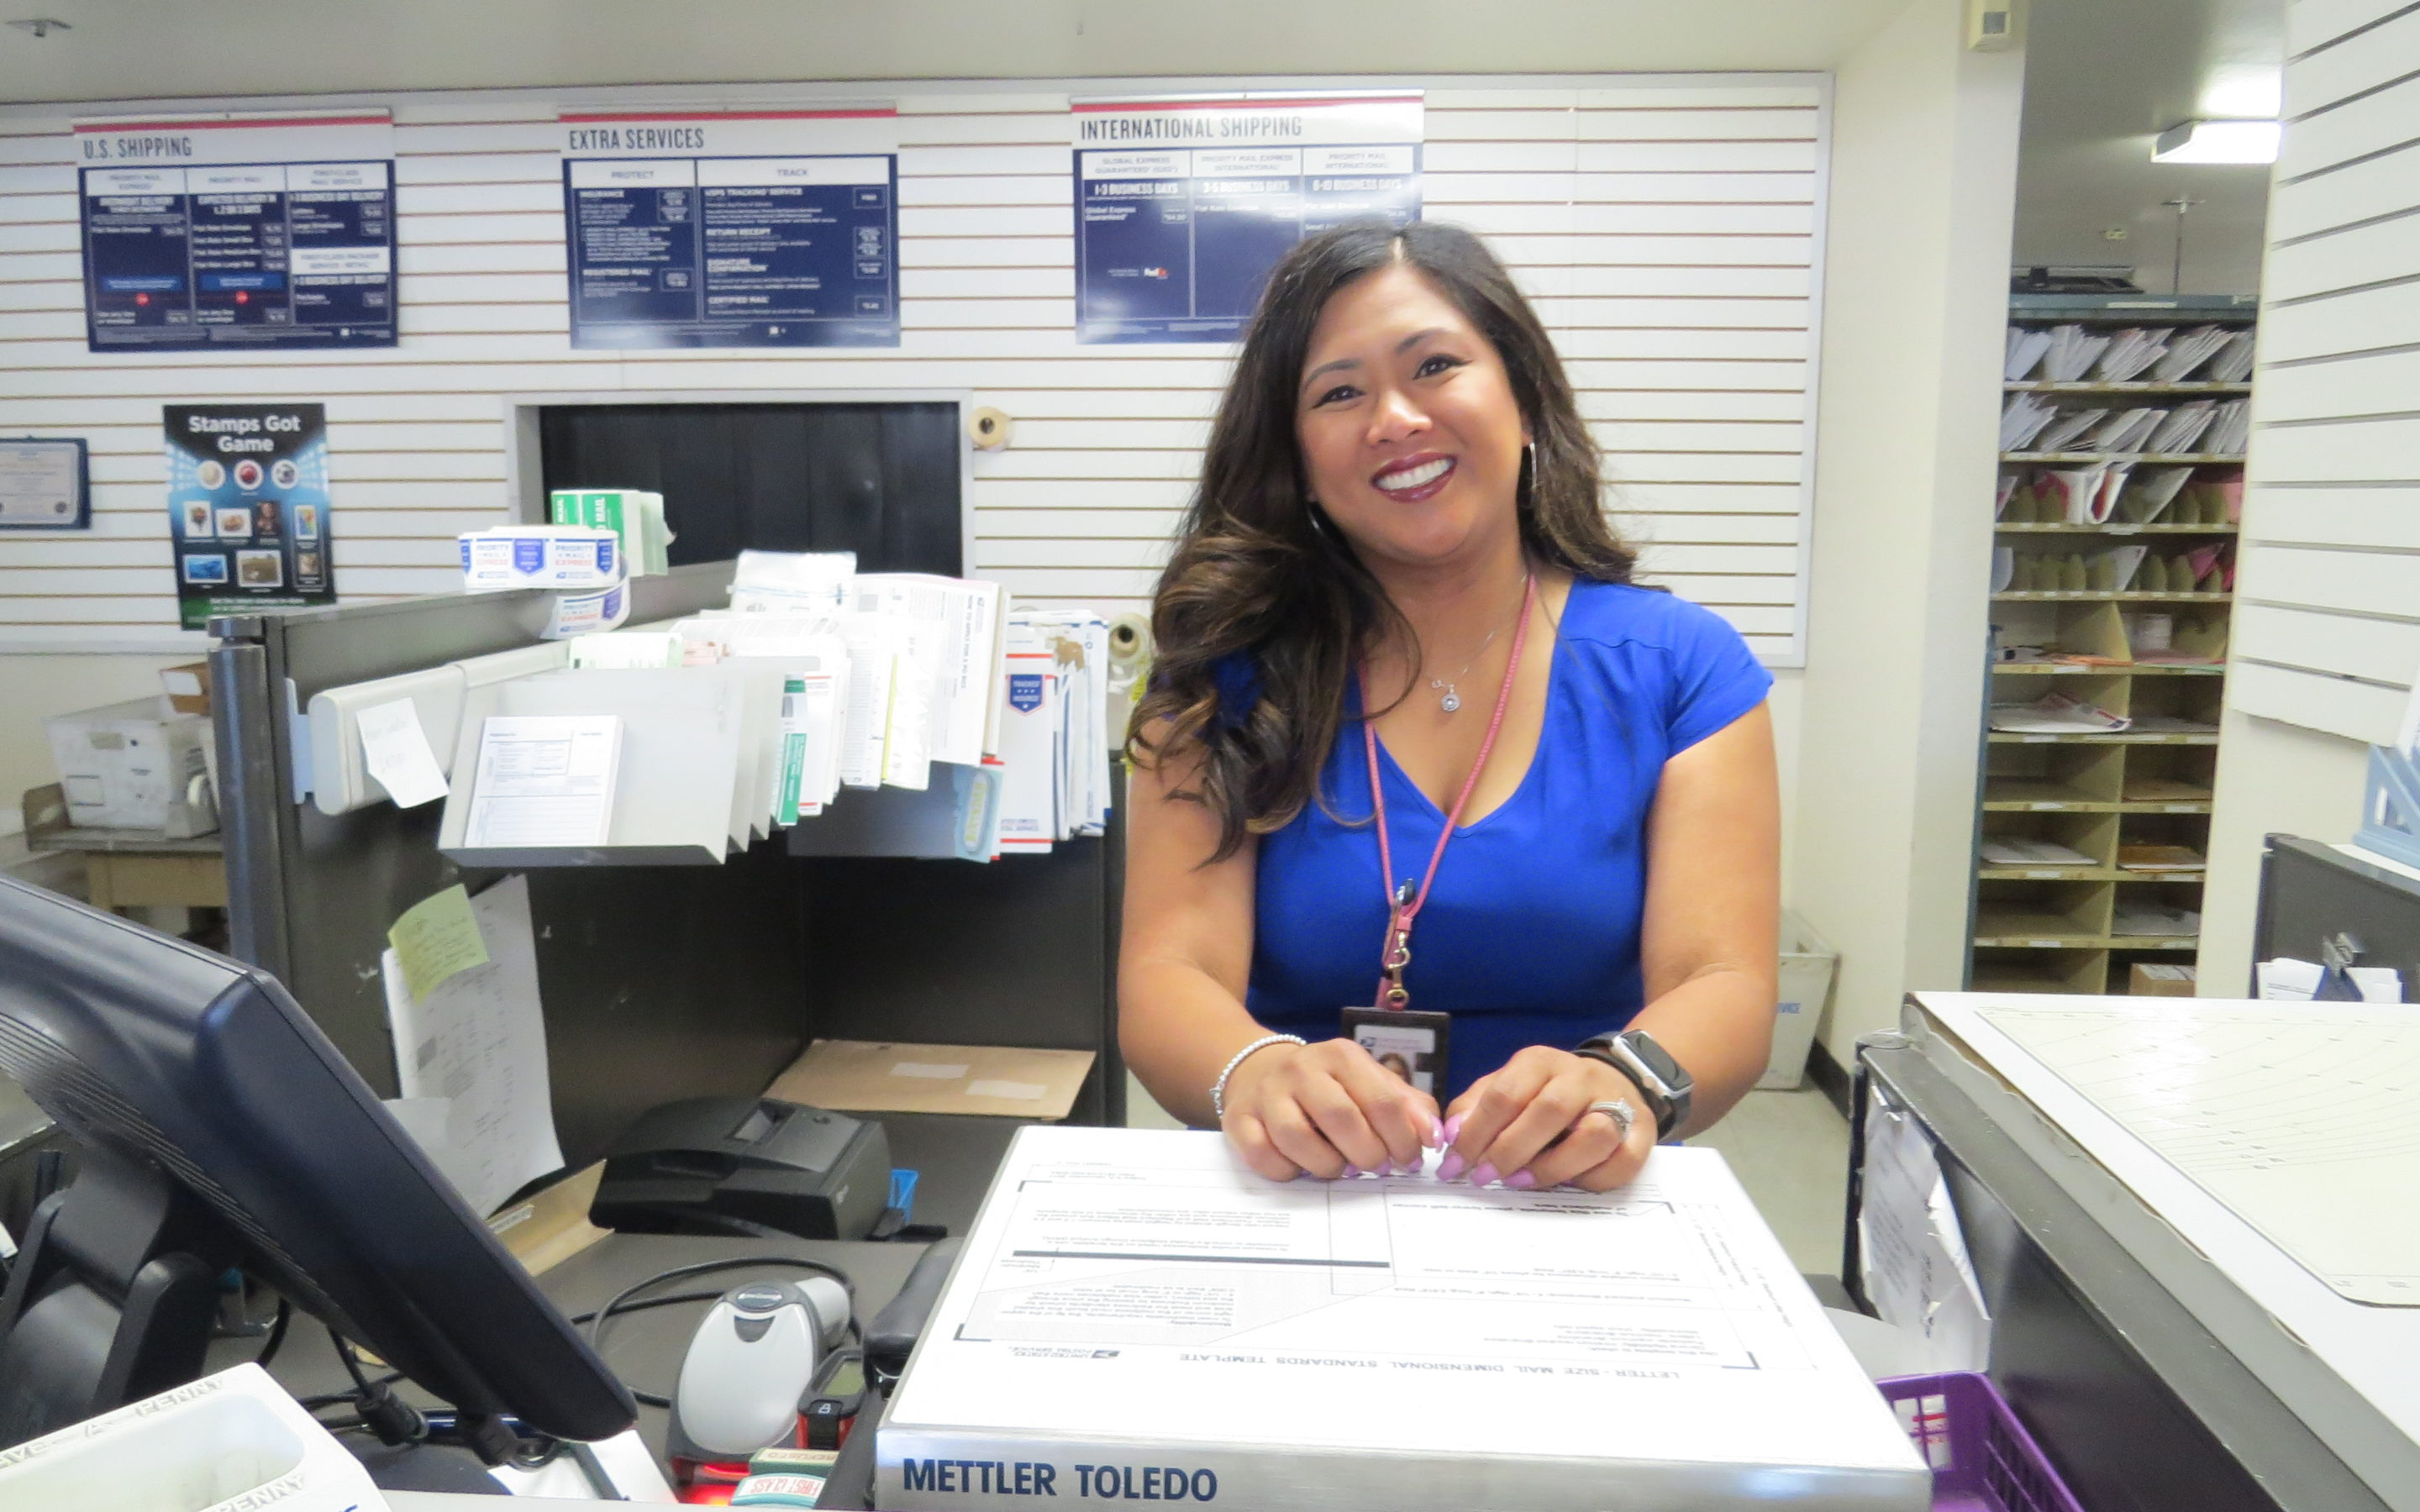 Main story – San Martin postmaster believes in building a community